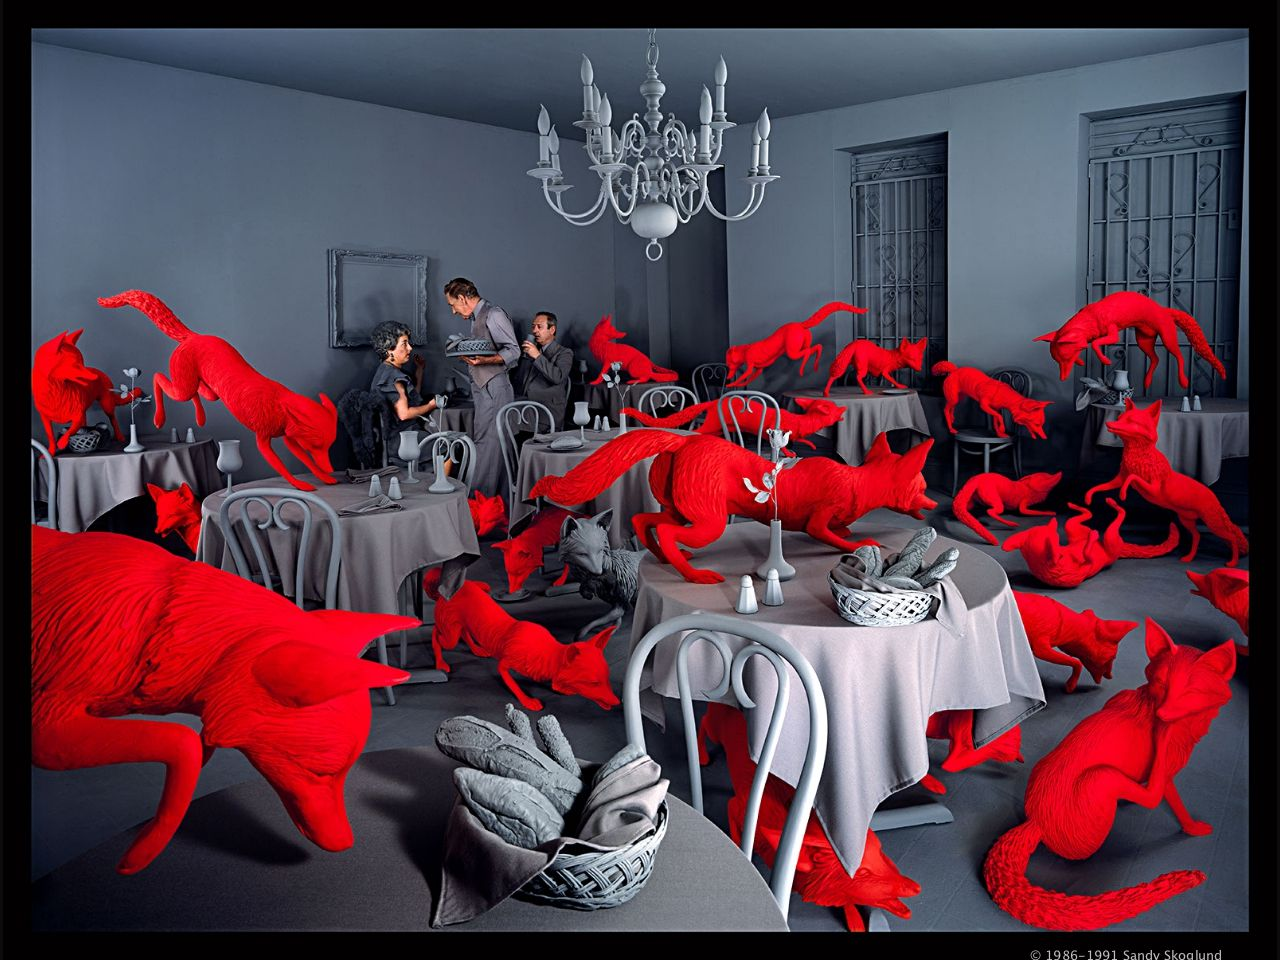 Best Sandy Skoglund Images On Pinterest Photography Bird And - Artist creates amazing fantasy dreamscapes into her small studio without using photoshop